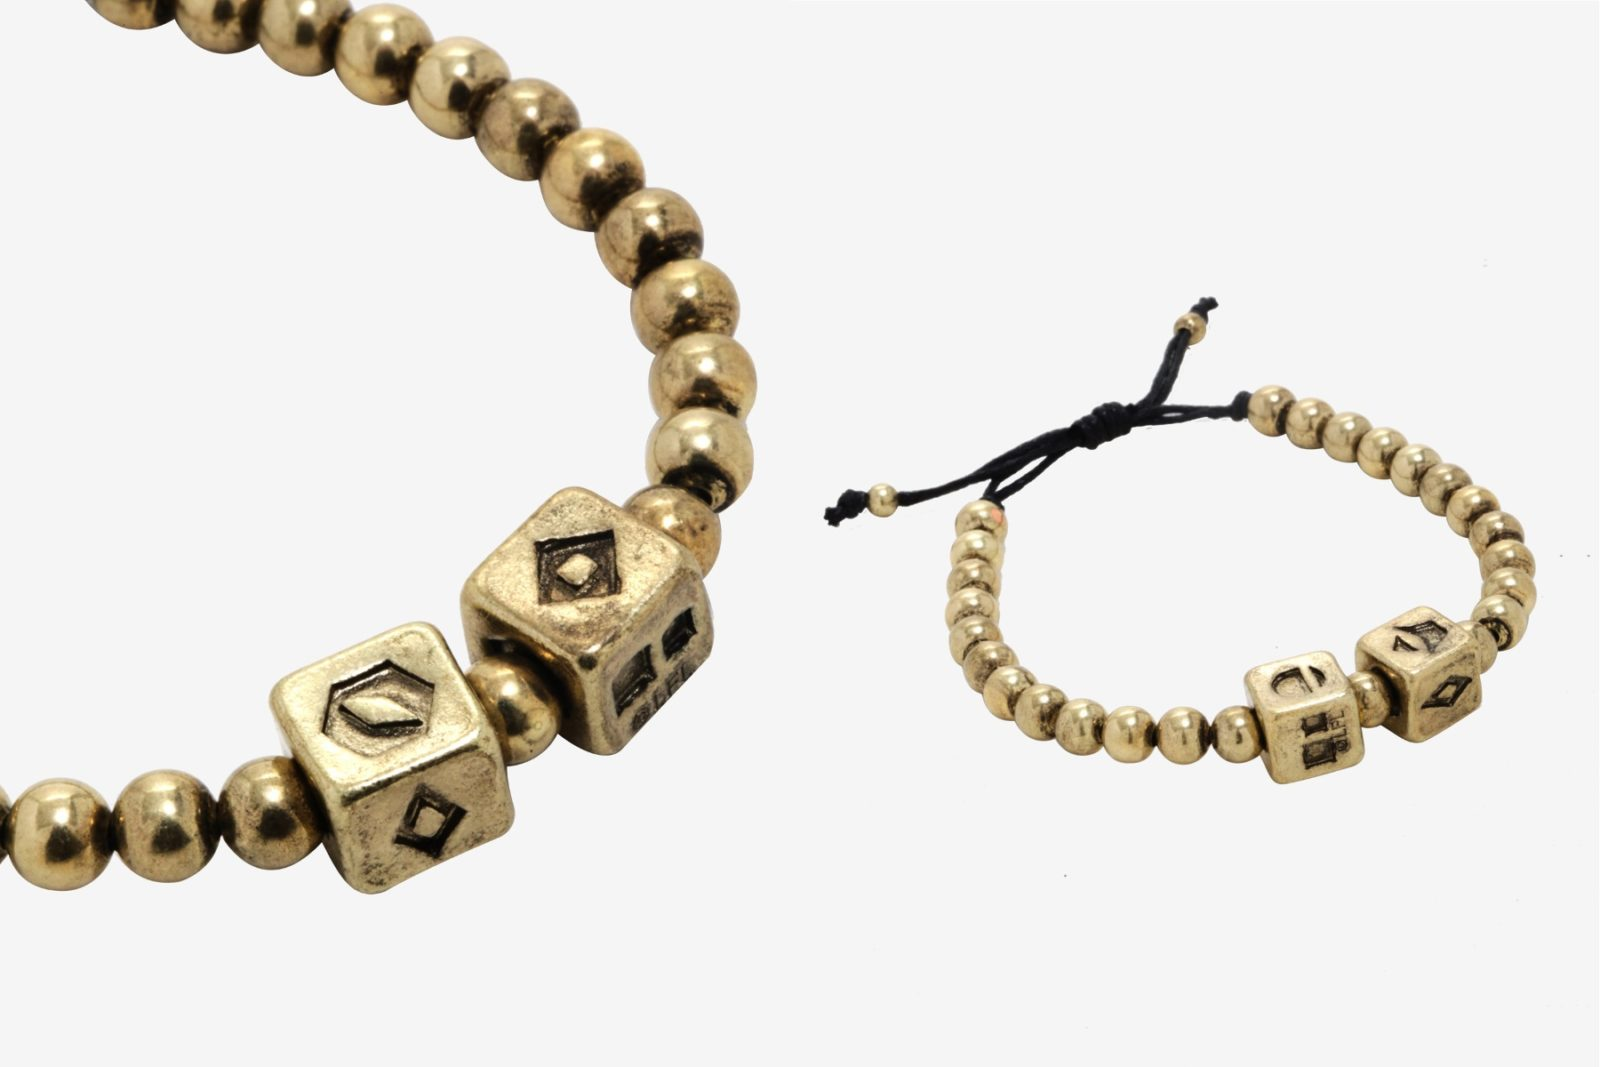 Box Lunch Exclusive Solo Dice Bracelet